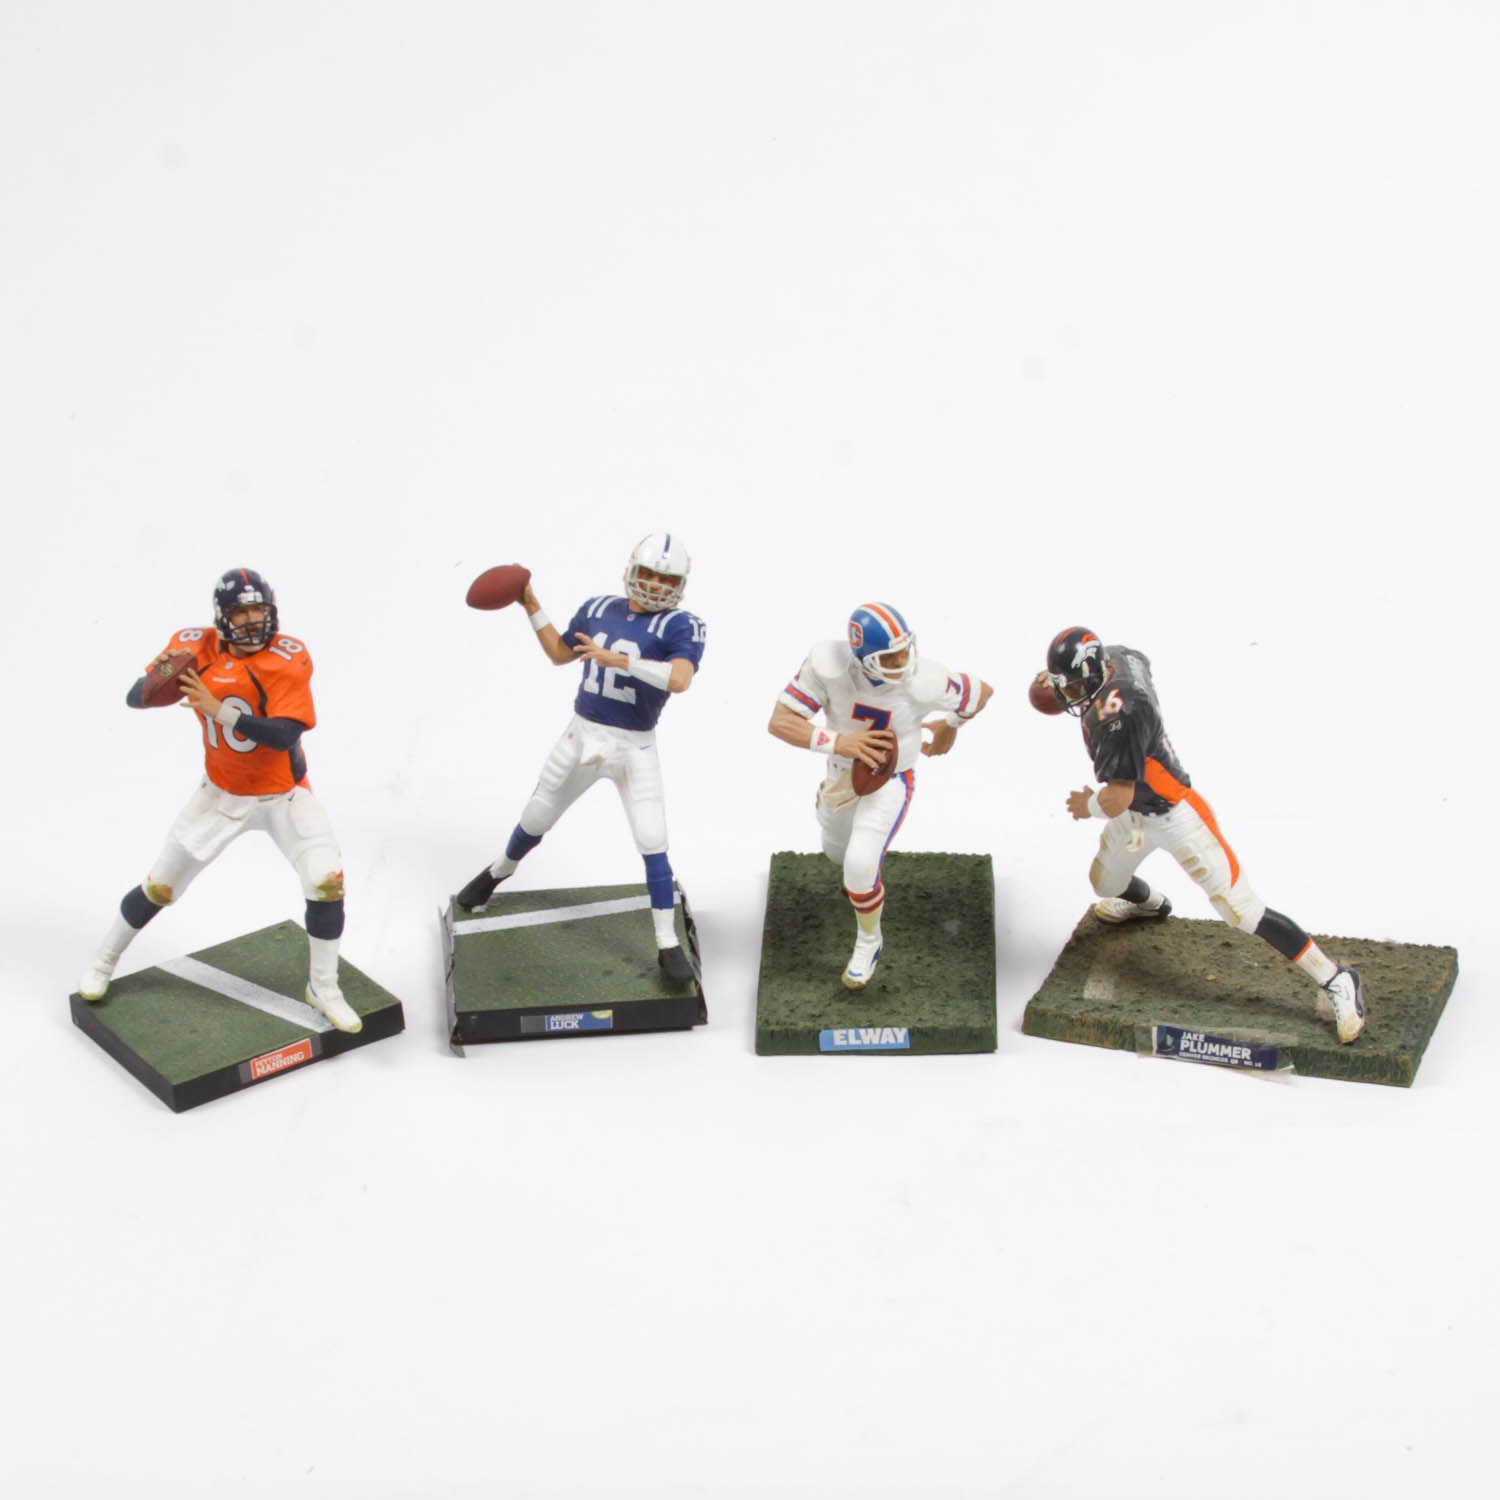 Collection of Famous Football Player Figurines